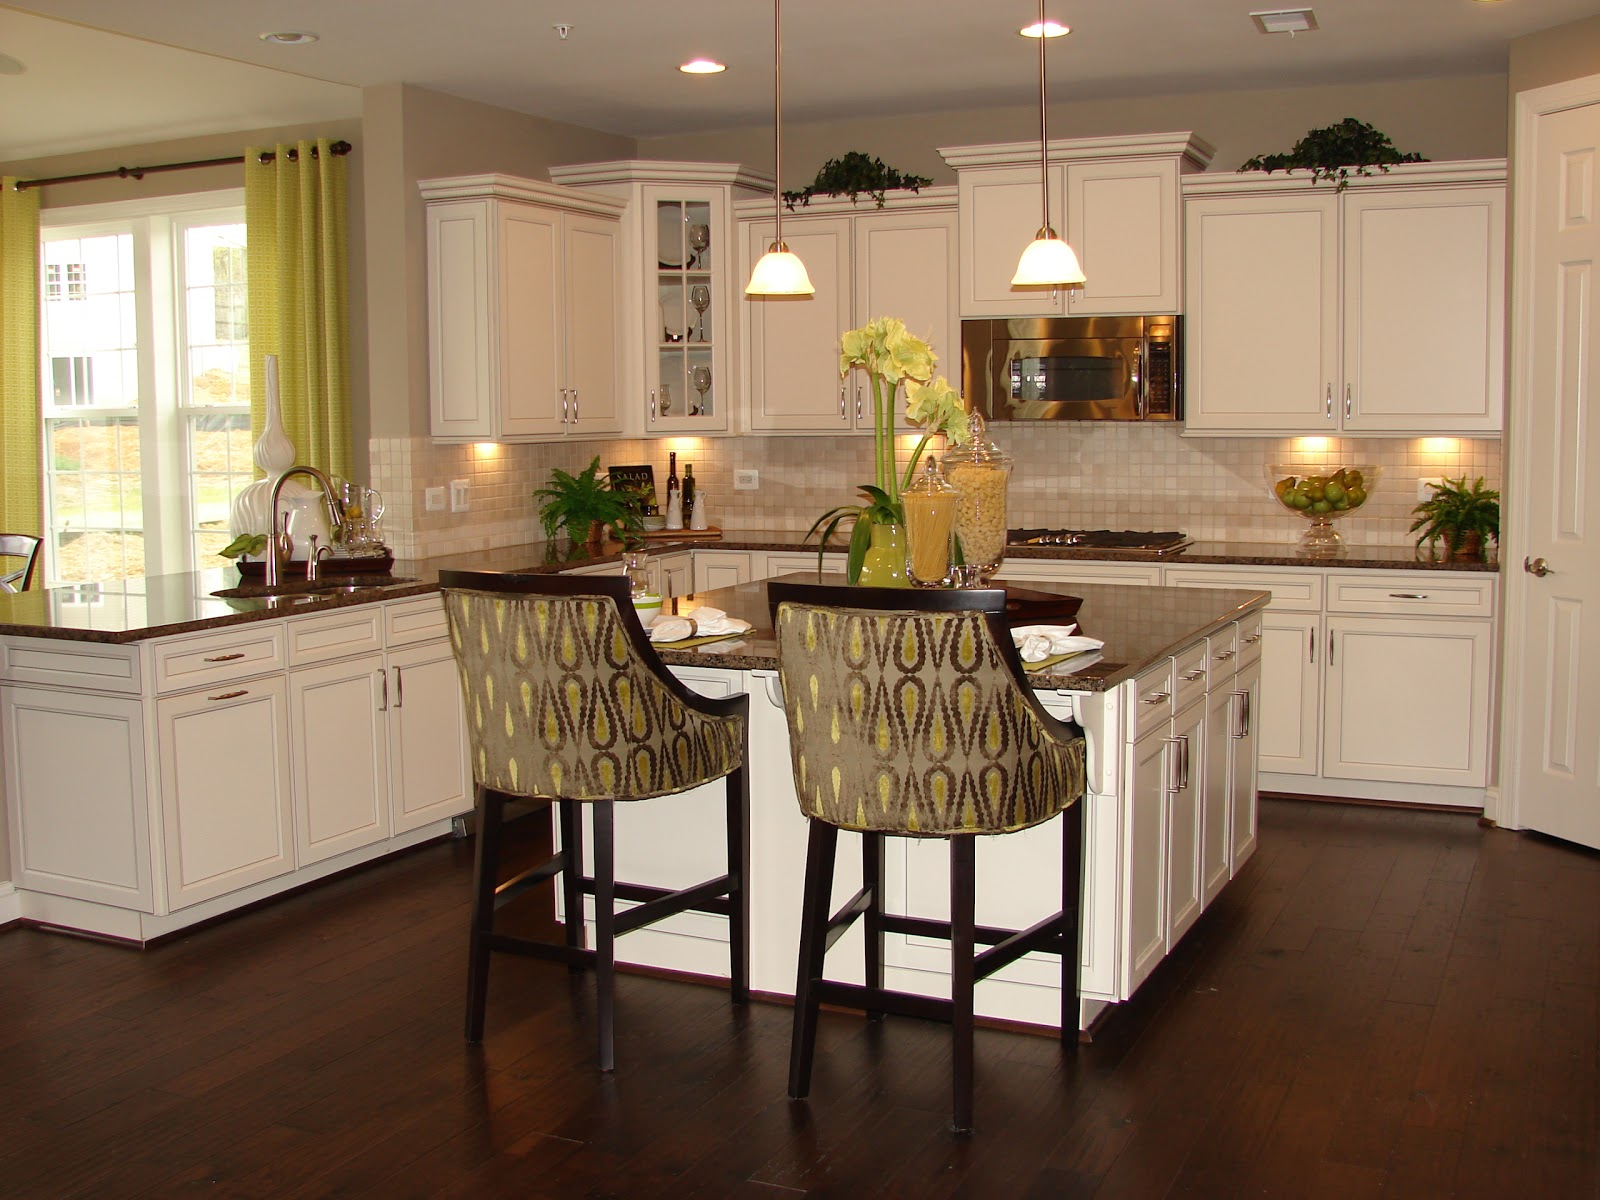 Kitchen design white cabinets home design roosa - White cabinet kitchen design ...